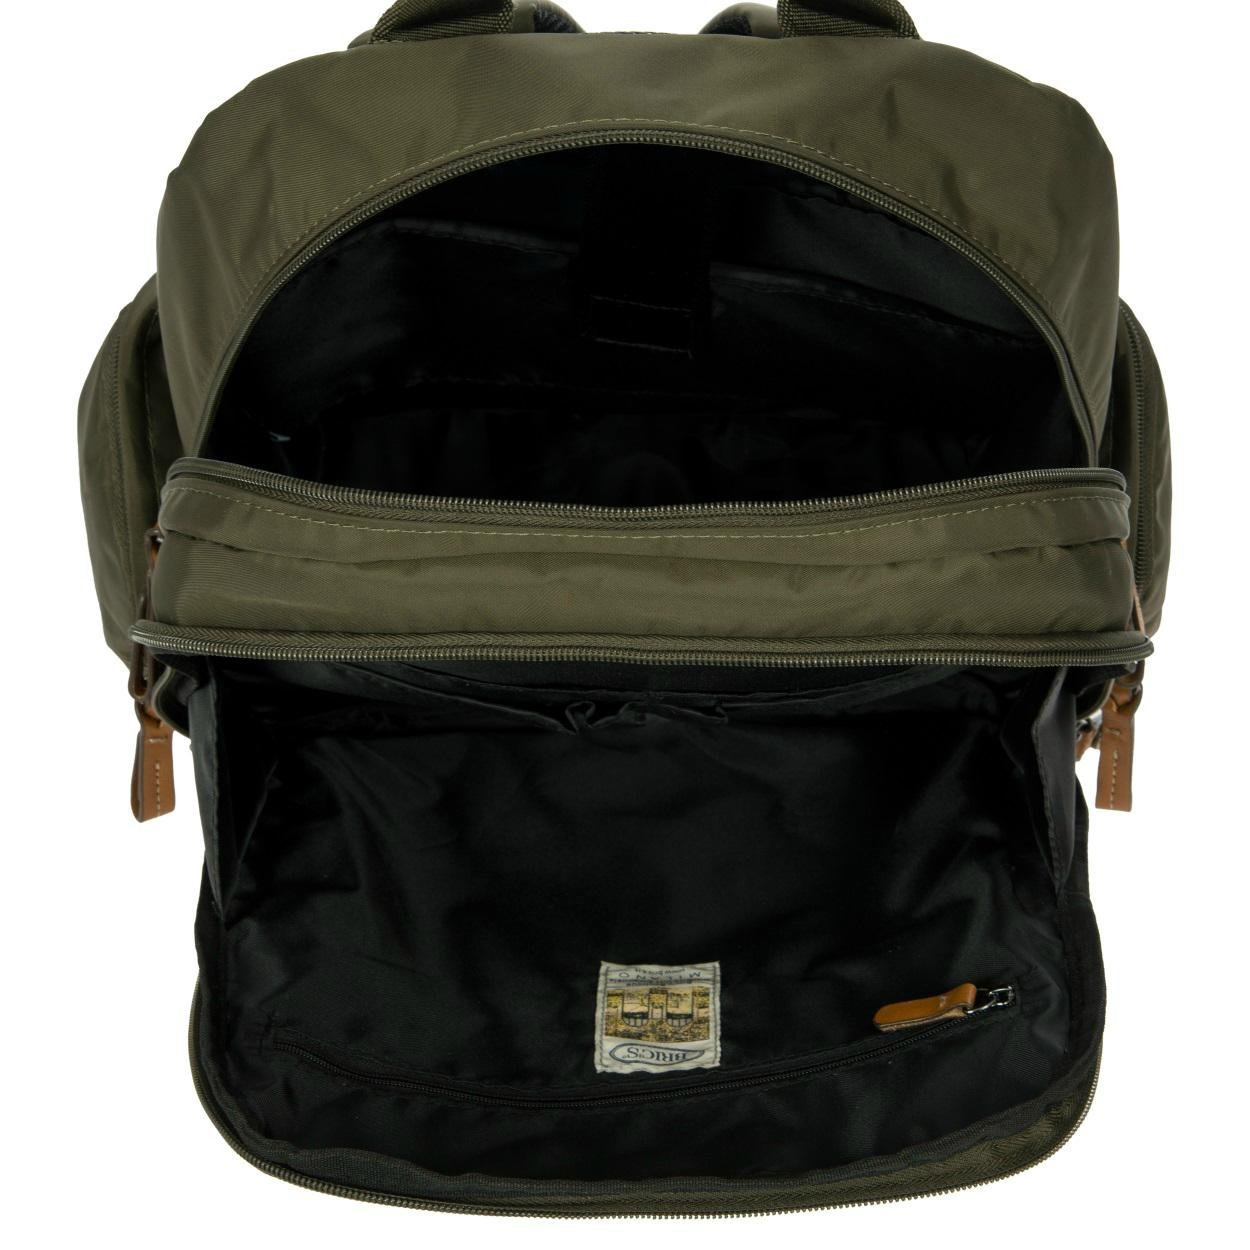 Bric's X-Bag/x-Travel 2.0 Nomad Laptop|Tablet Business Backpack, Navy, One Size by Bric's (Image #1)